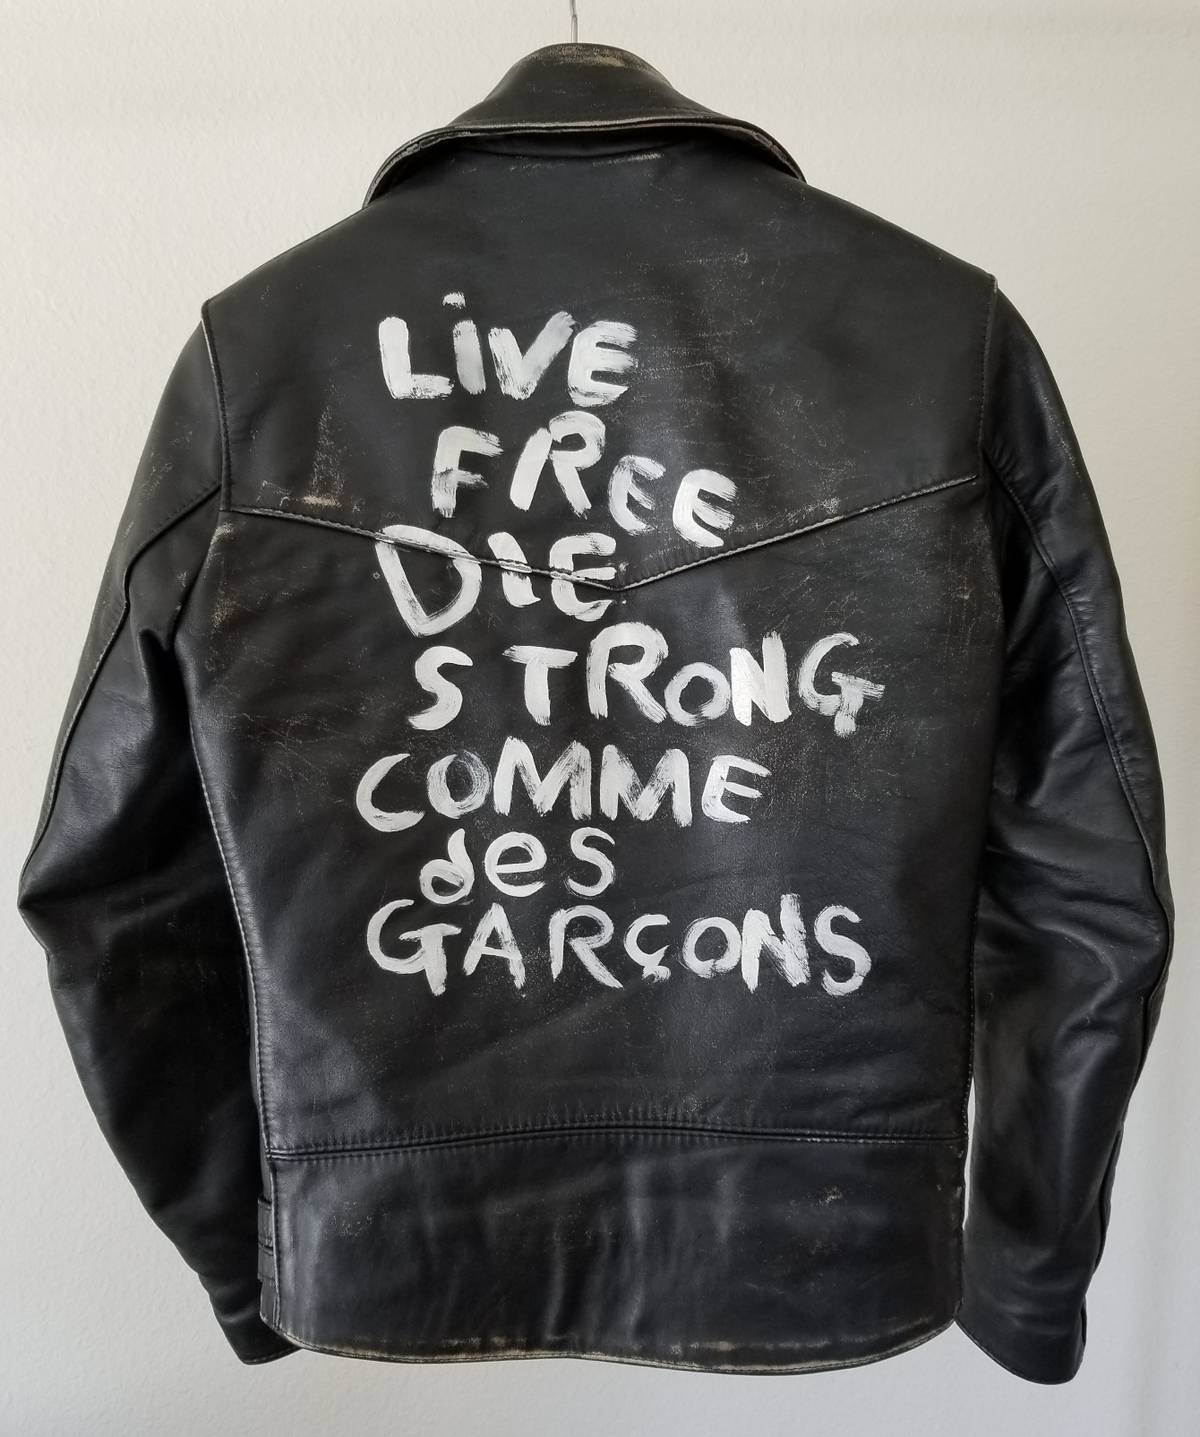 Comme des garcons leather jacket